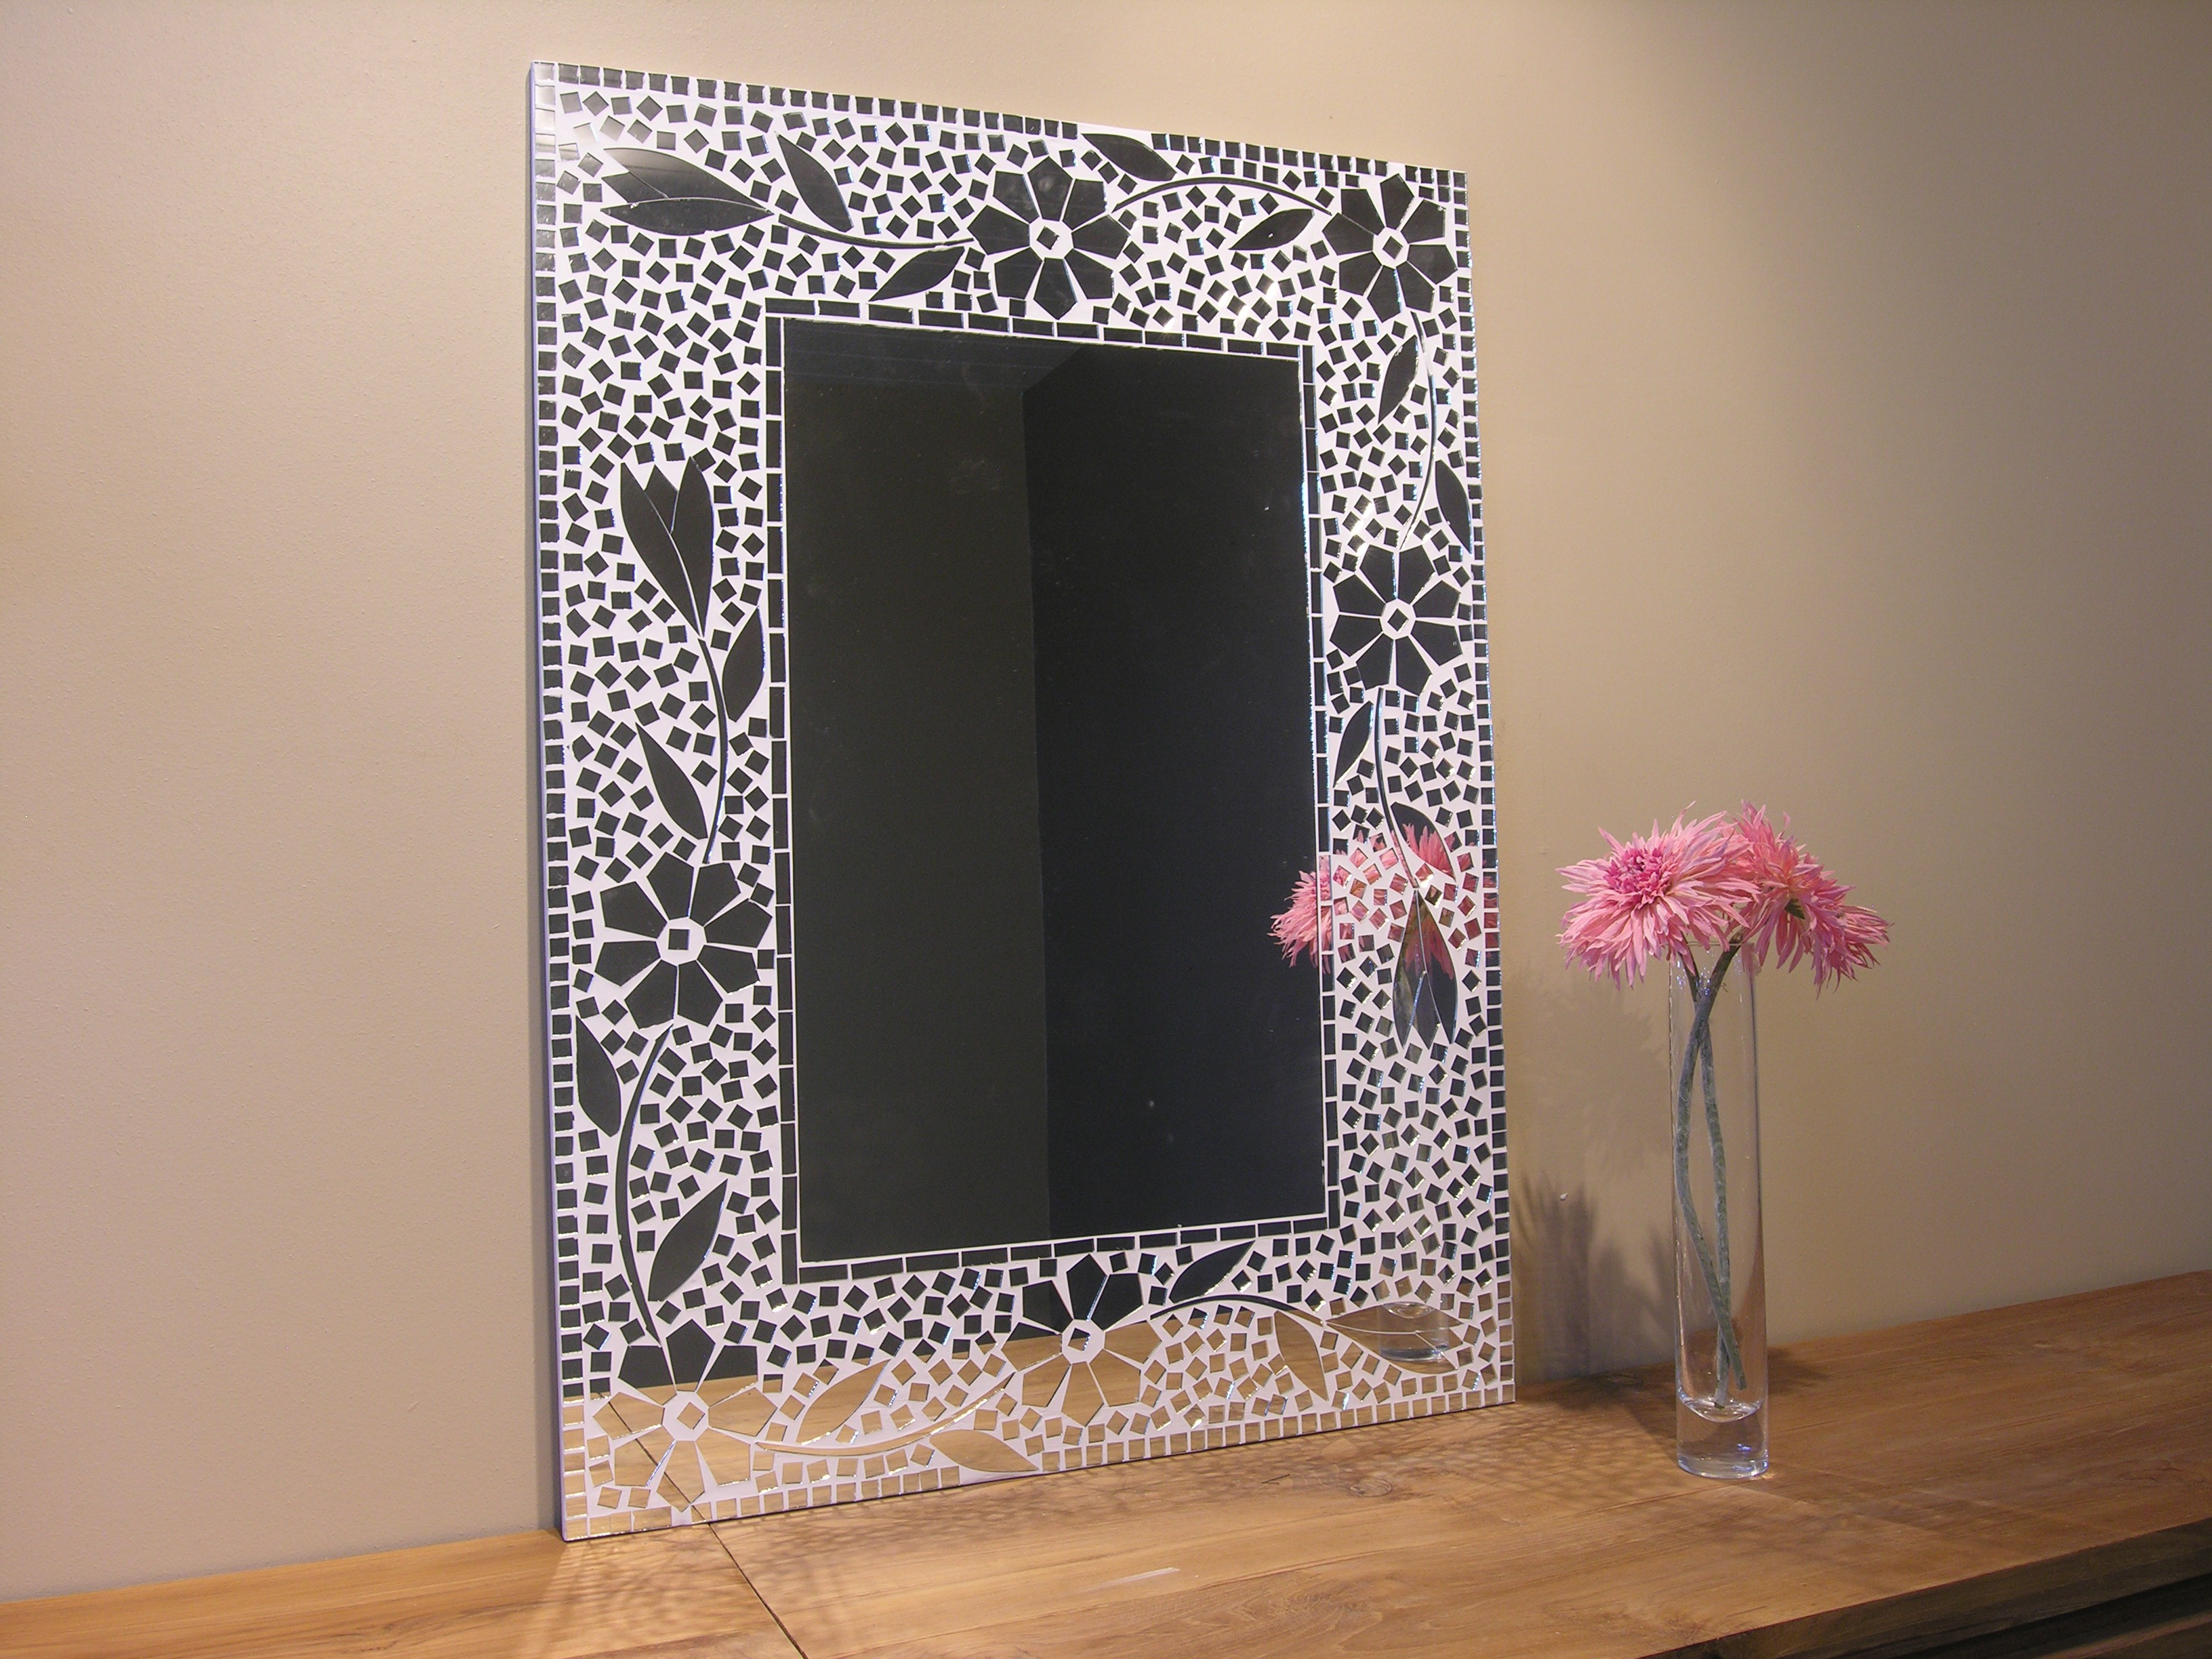 neuf miroir mosaique design fleur 80cm x 60cm salon chambre ebay. Black Bedroom Furniture Sets. Home Design Ideas